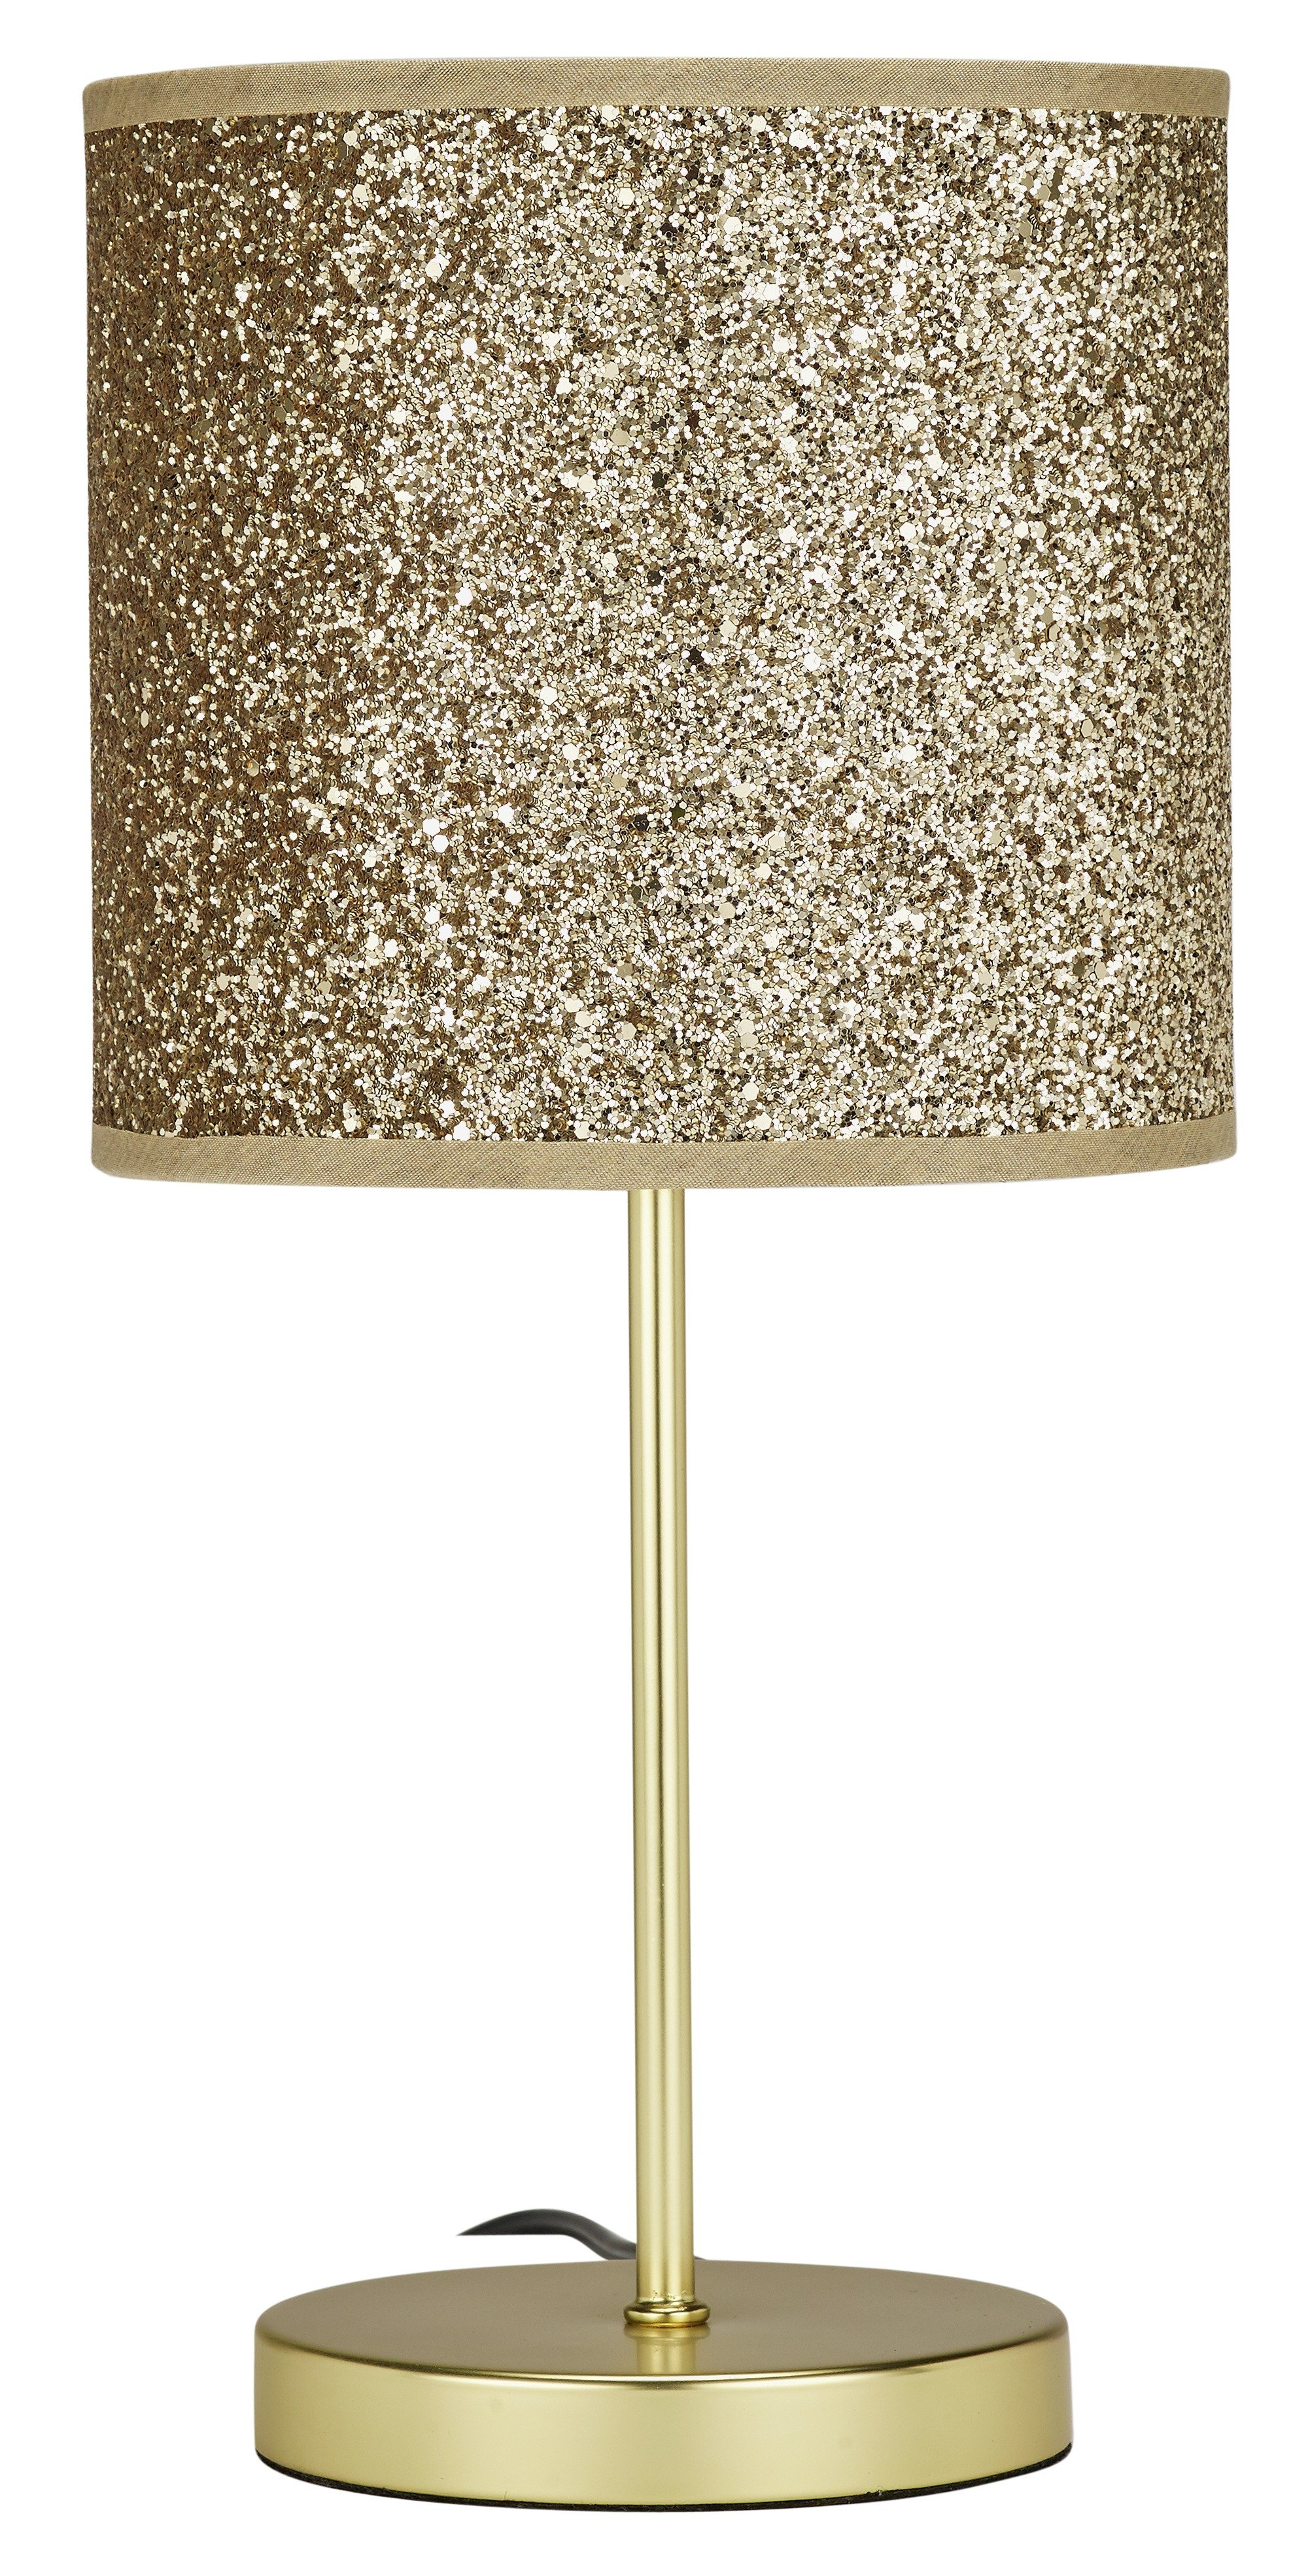 Image of HOME - Sparkling - Table Lamp - Gold